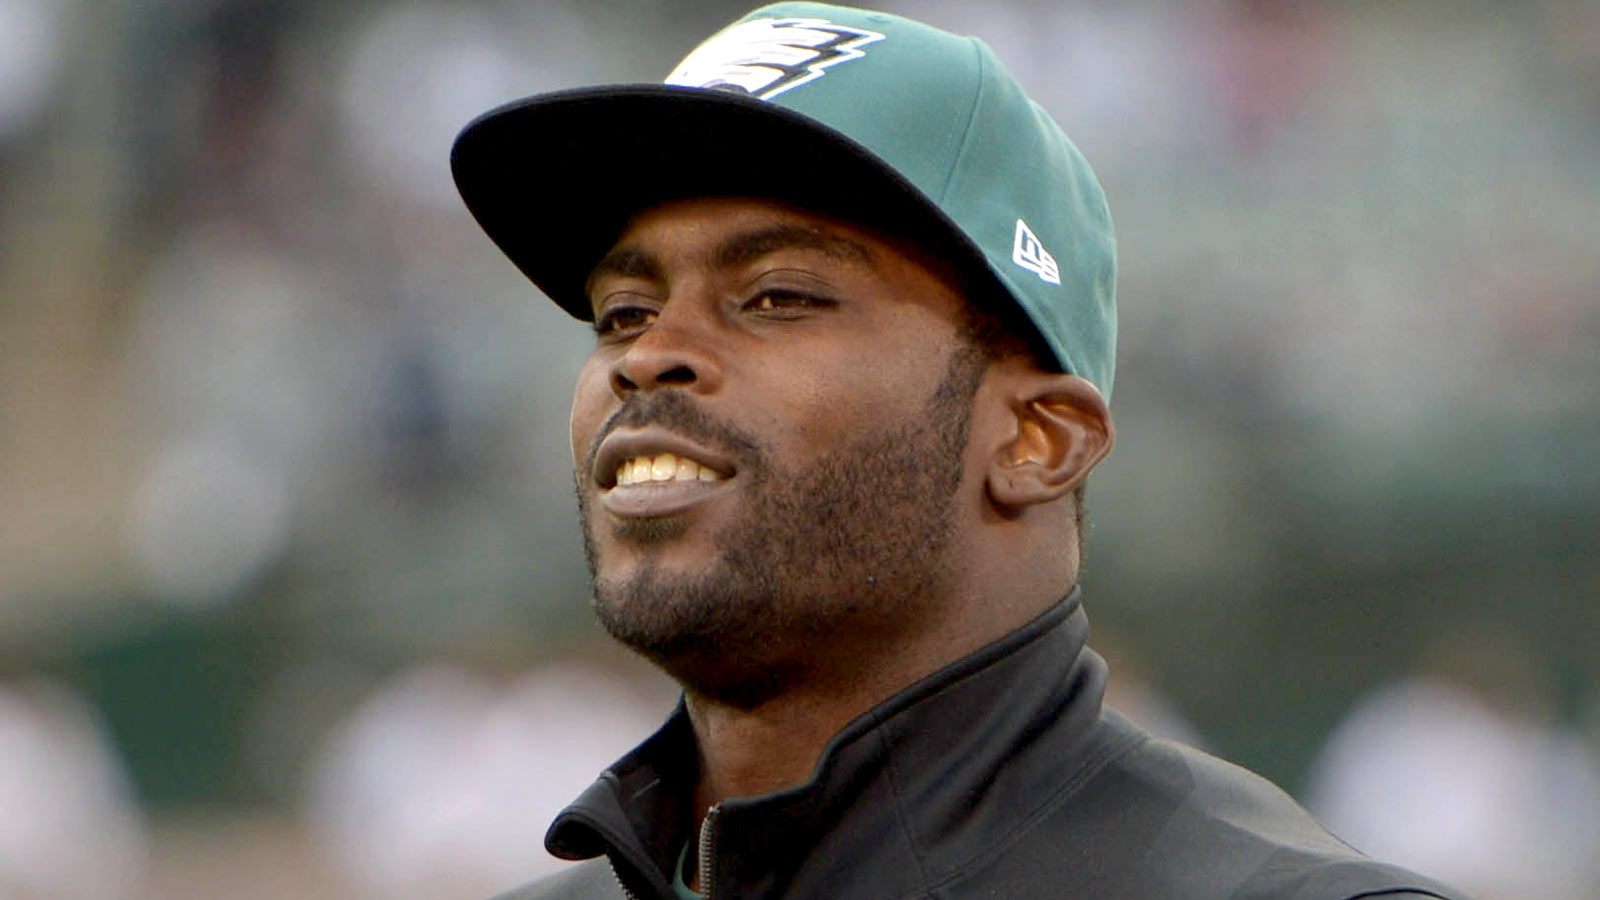 Next month, Michael Vick will be finished paying off almost $18 million in debt he was saddled with after a conviction for financing a dogfighting ...